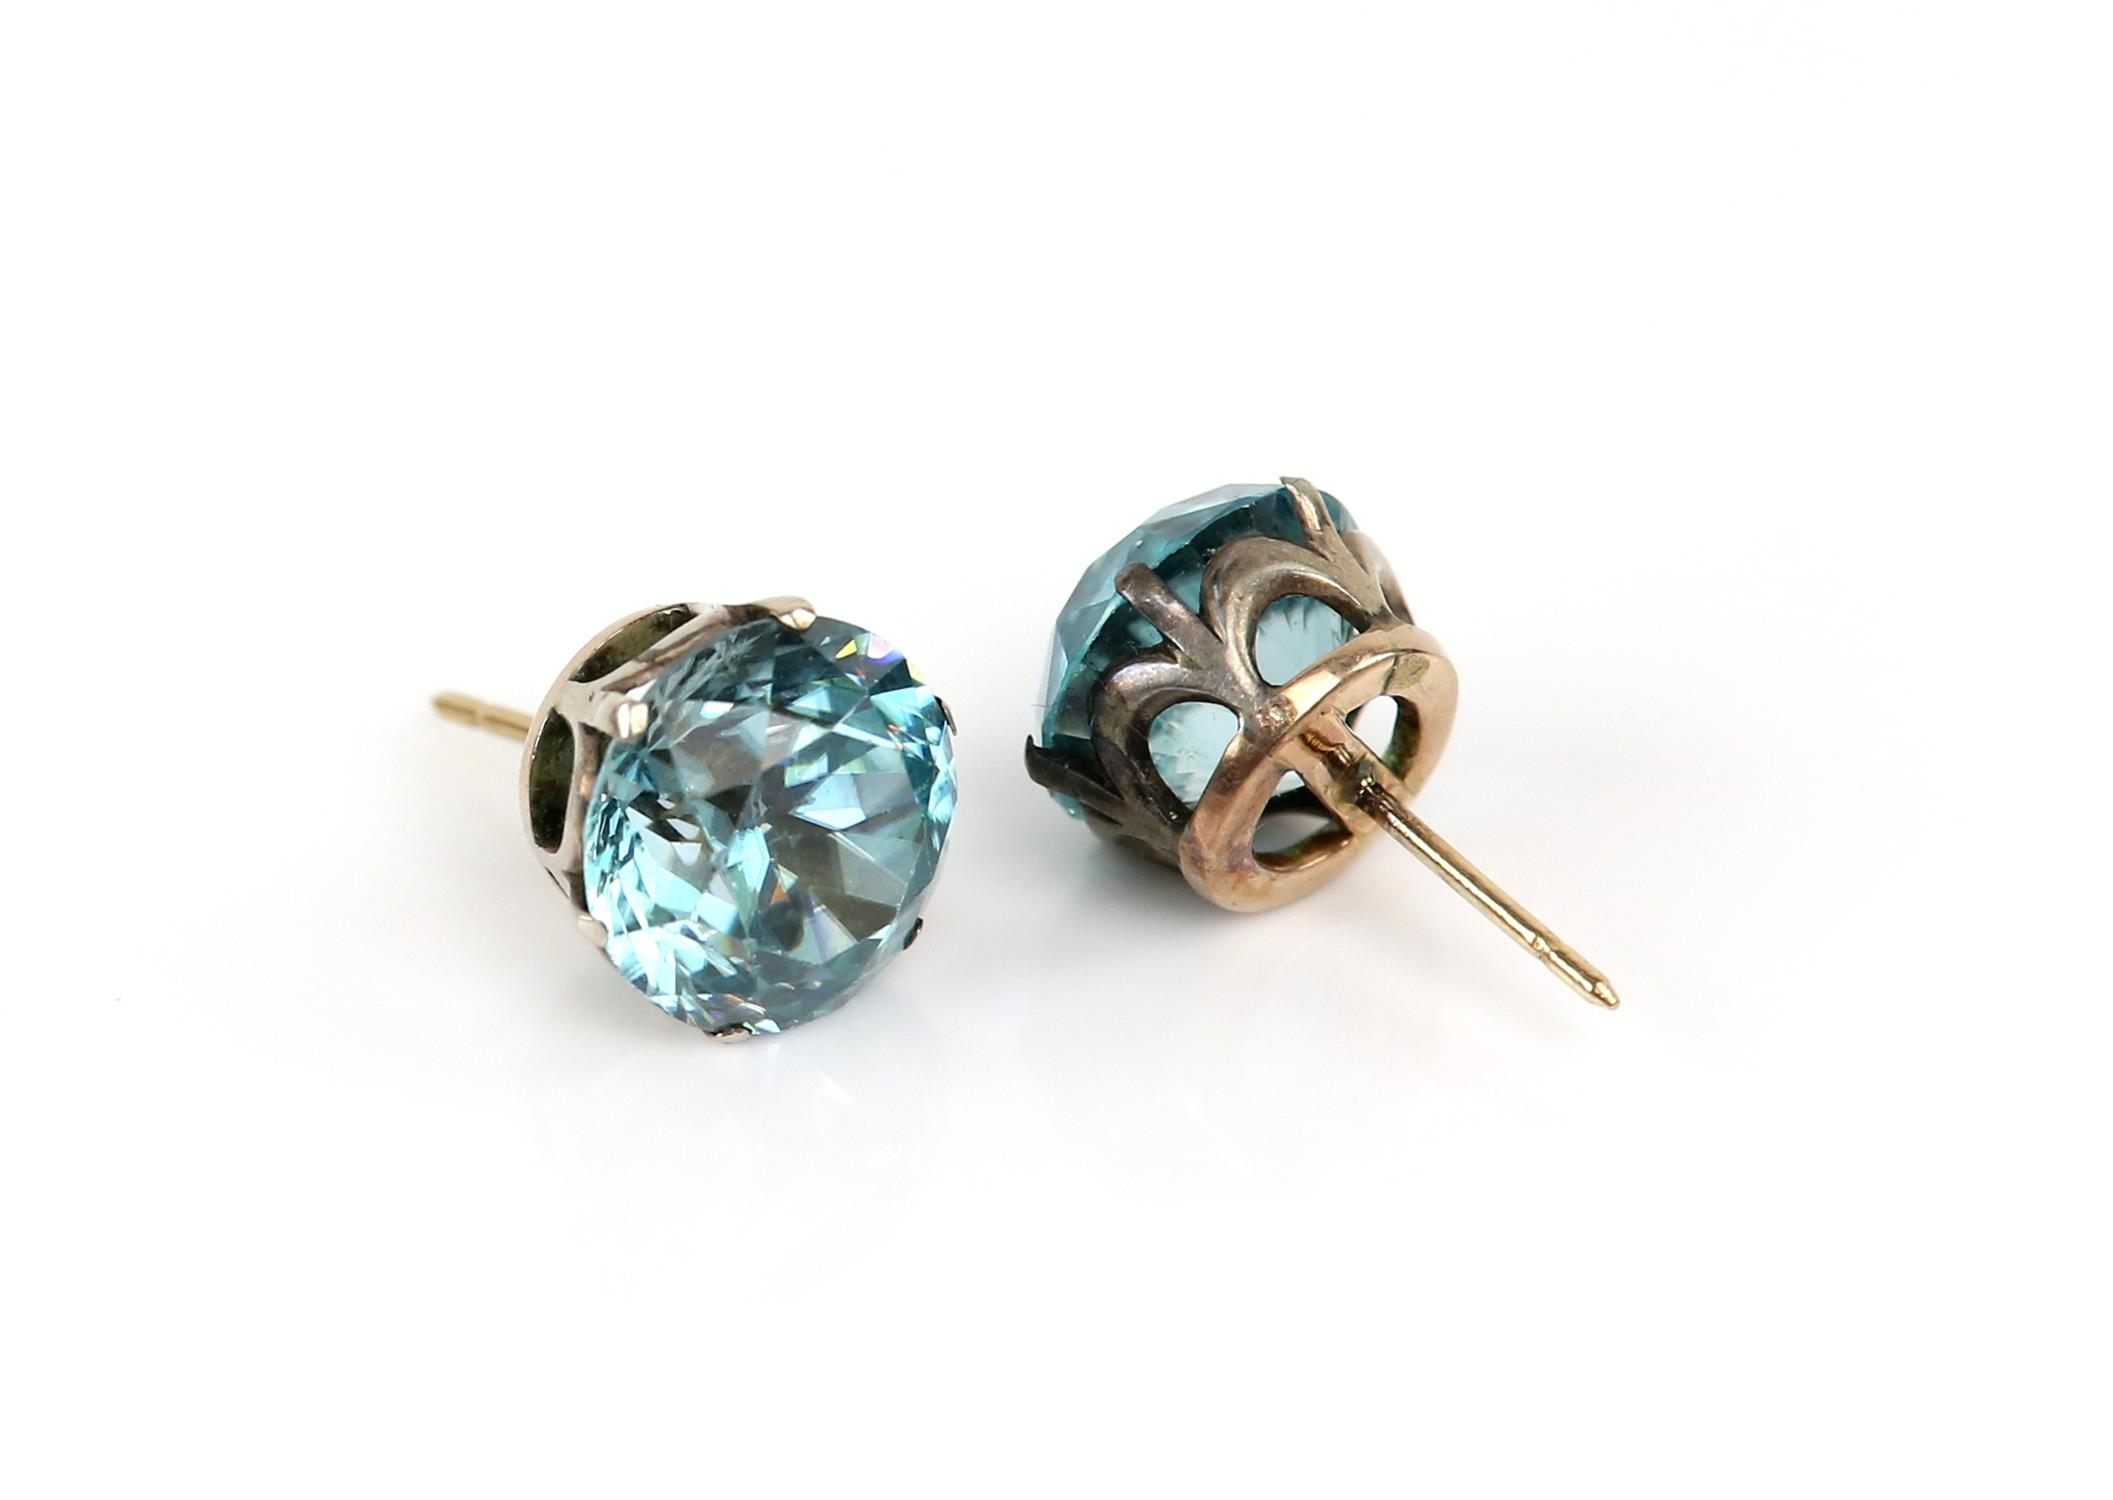 Early 19th Century blue Zircon earrings, old cut zircons, estimated total weight 14.79 carats, - Image 2 of 4